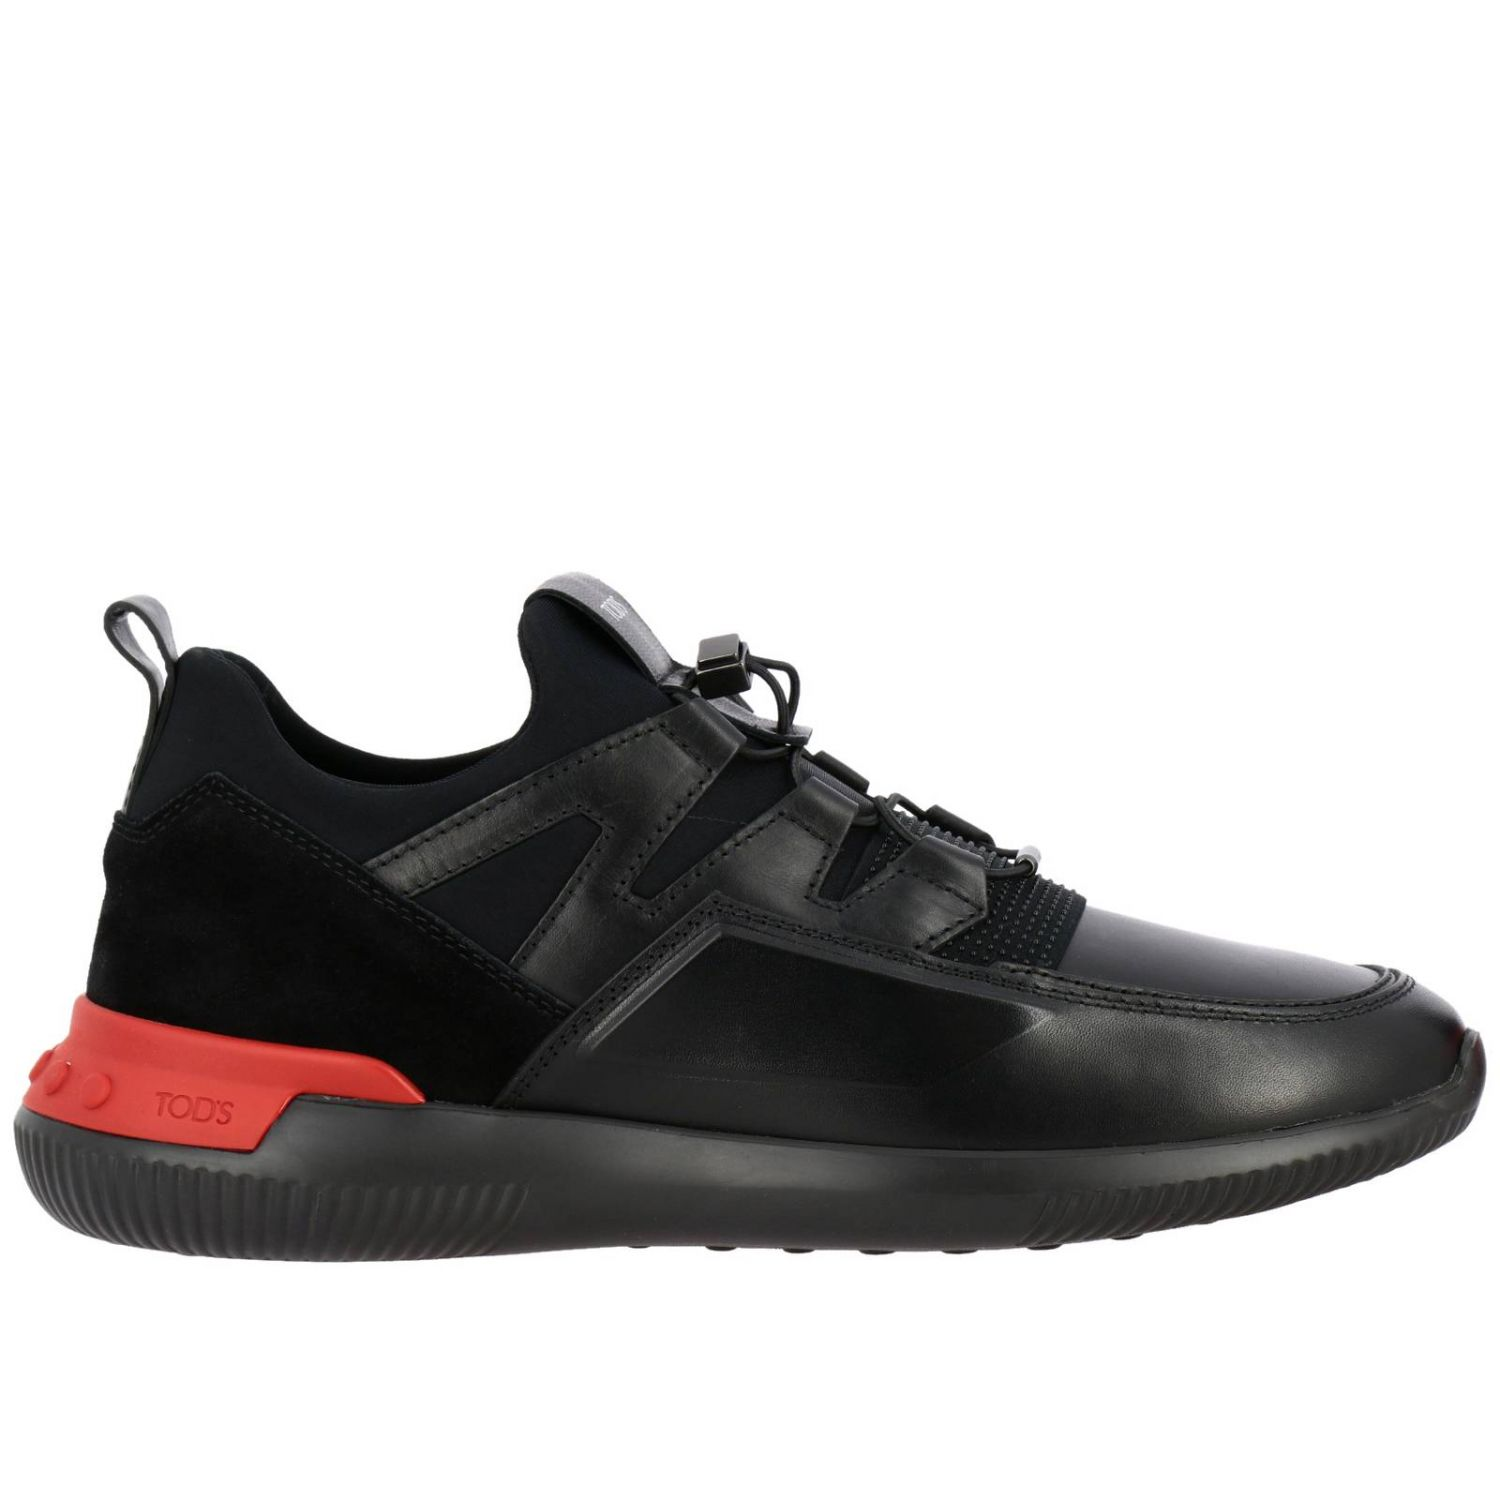 No code Active Sport Tod's sneakers in suede and neoprene leather with elastic laces black 1